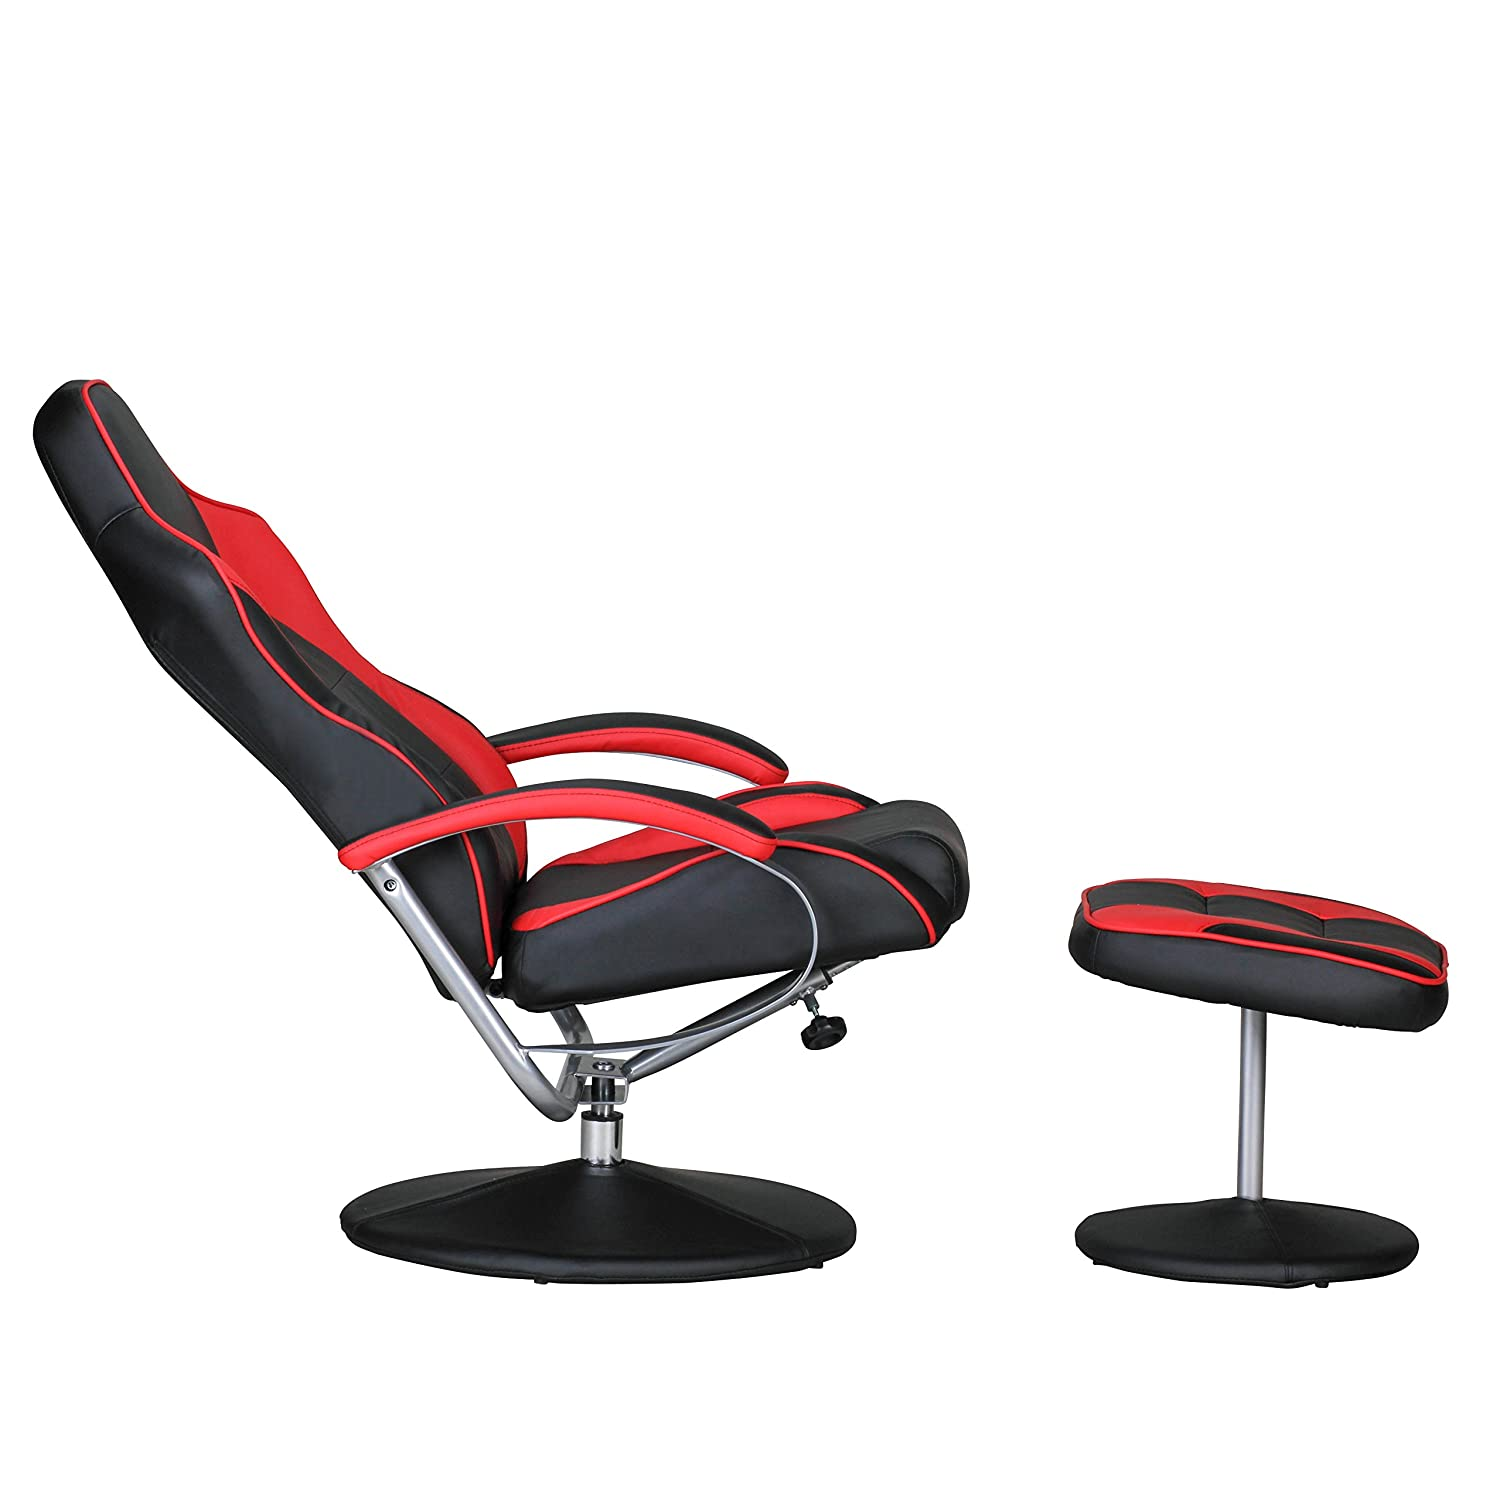 Tv sessel design  AMSTYLE, Fernsehsessel, SPM1.264, SPORTING TV Design Relax-Sessel ...